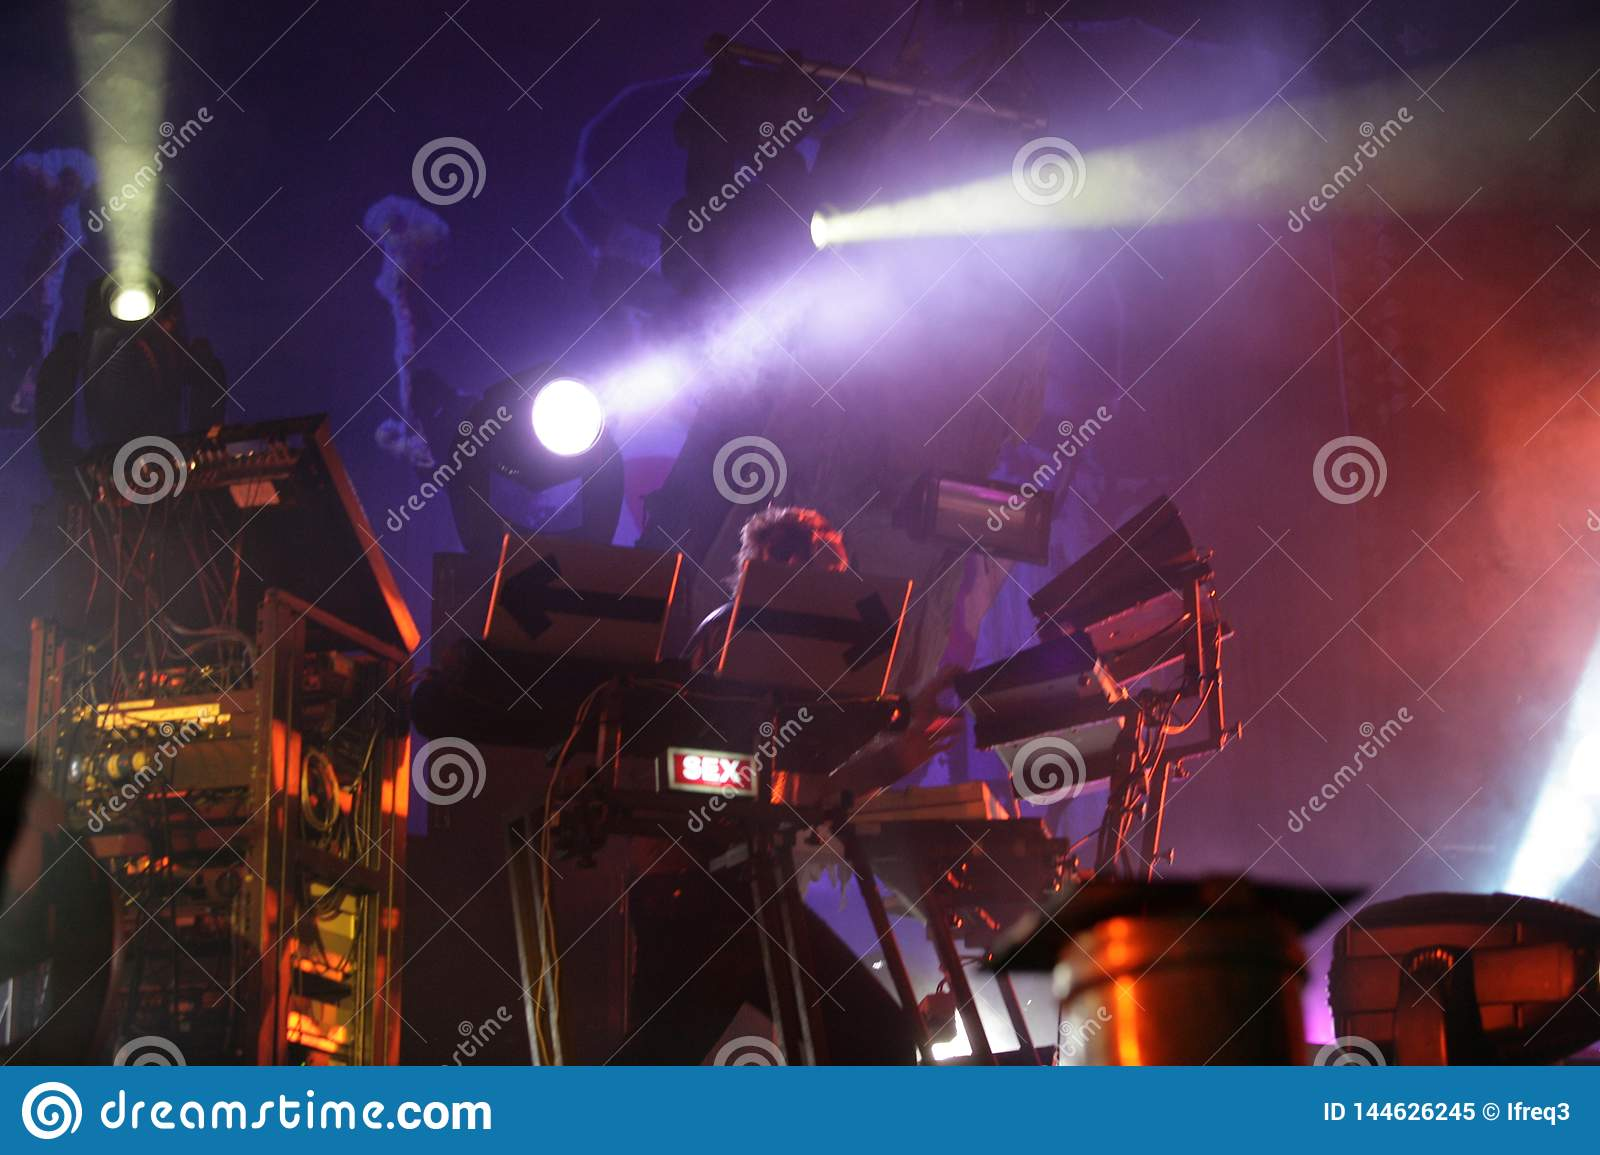 Liam Howlett sound producer musician on stage, the Prodigy, concert in Russia 2005